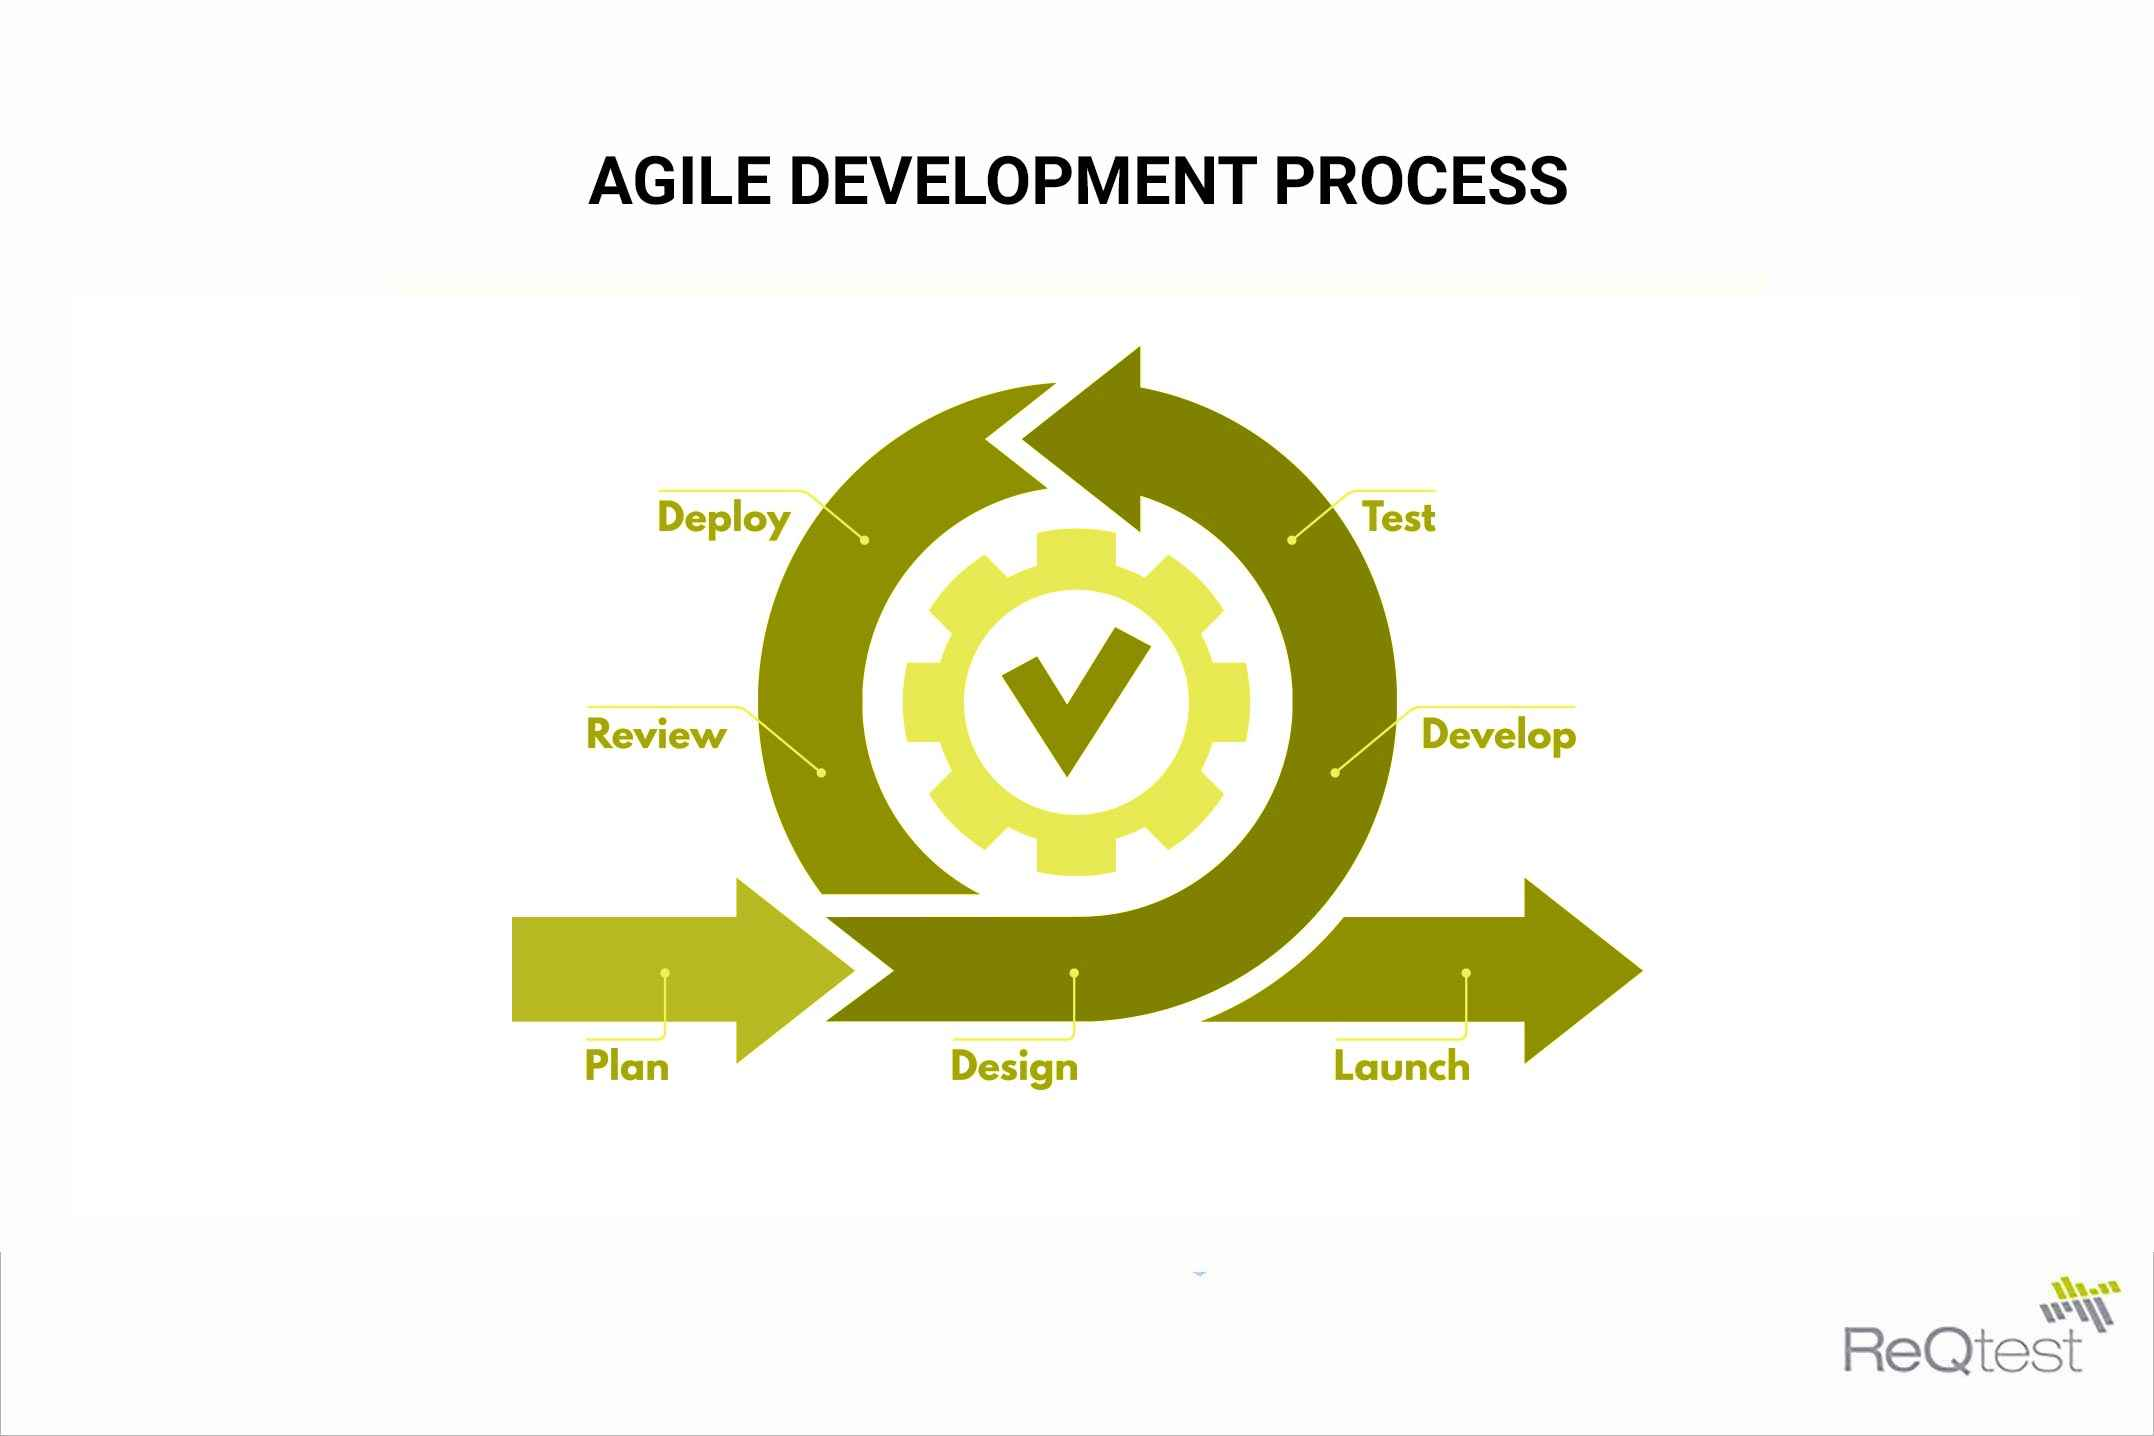 Agile development process